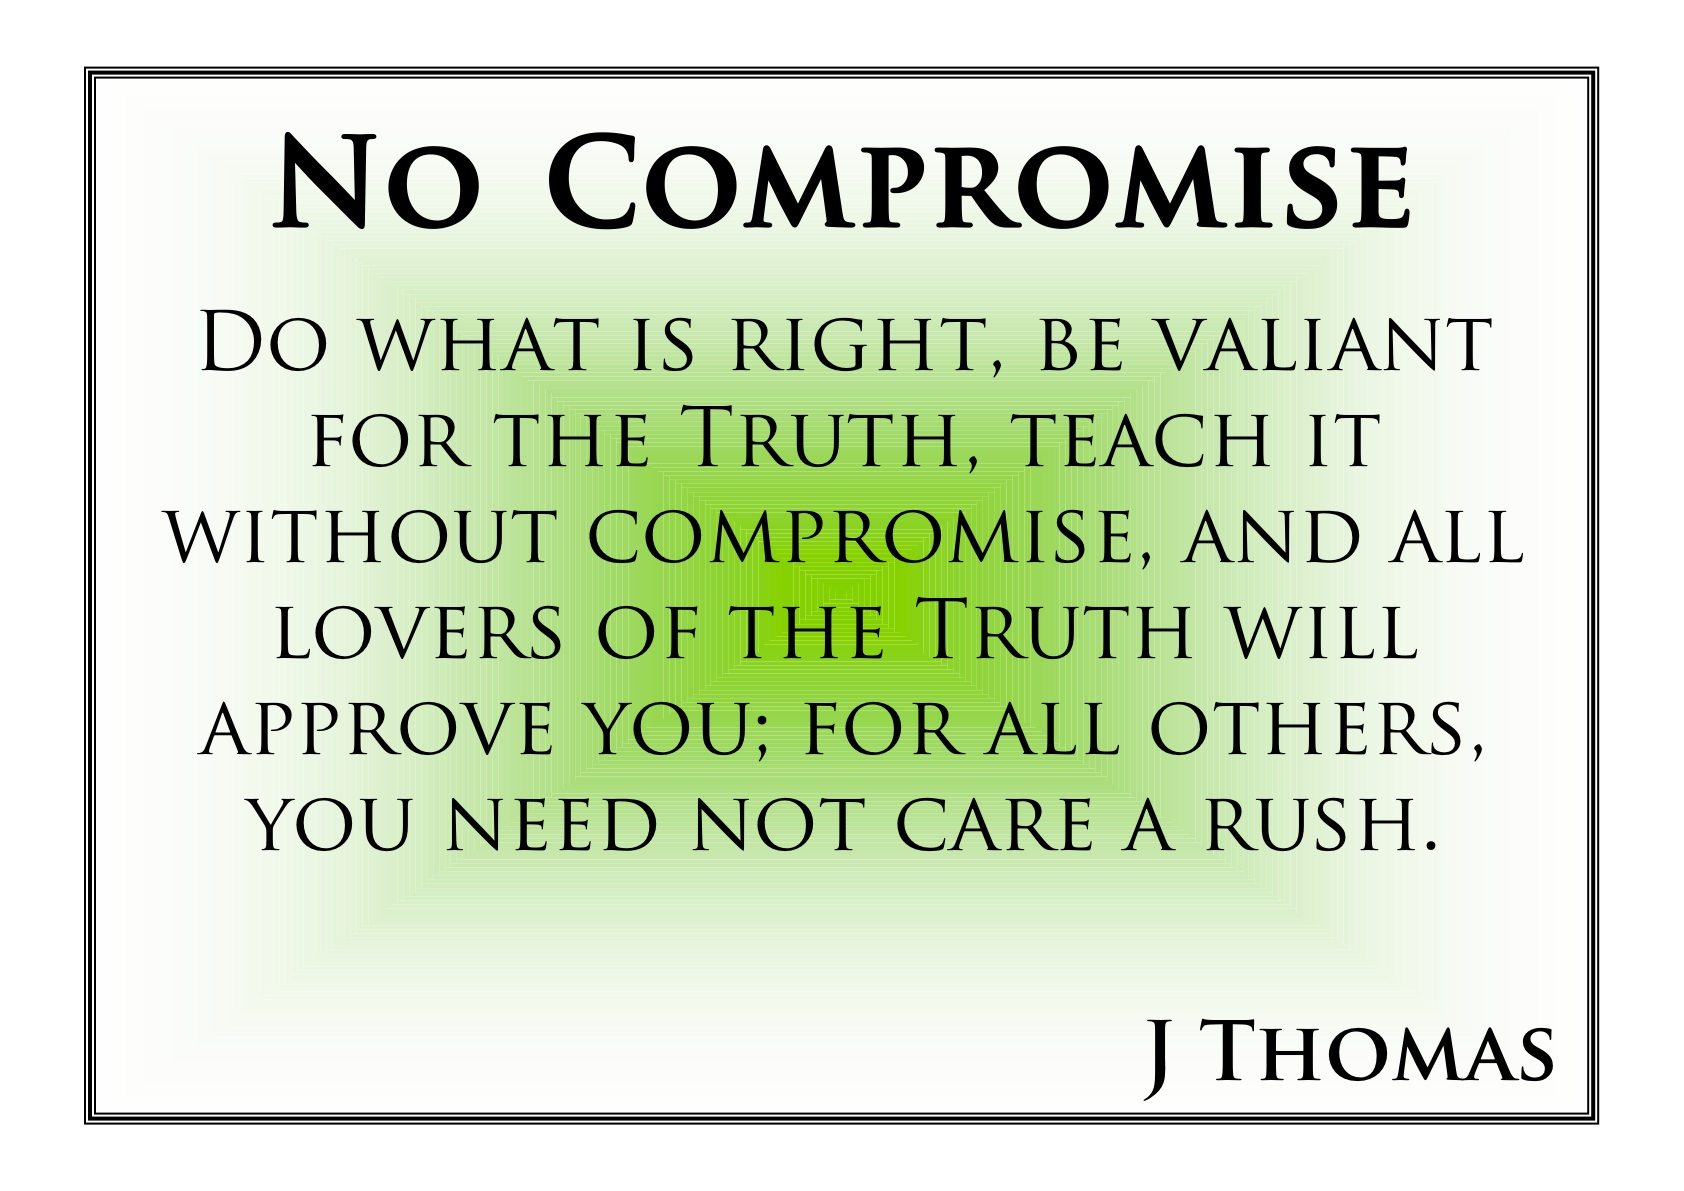 Do what is right, be valiant for the Truth, teach it without compromise, and all lovers of the Truth will approve you. For others you need not care.. J. Thomas